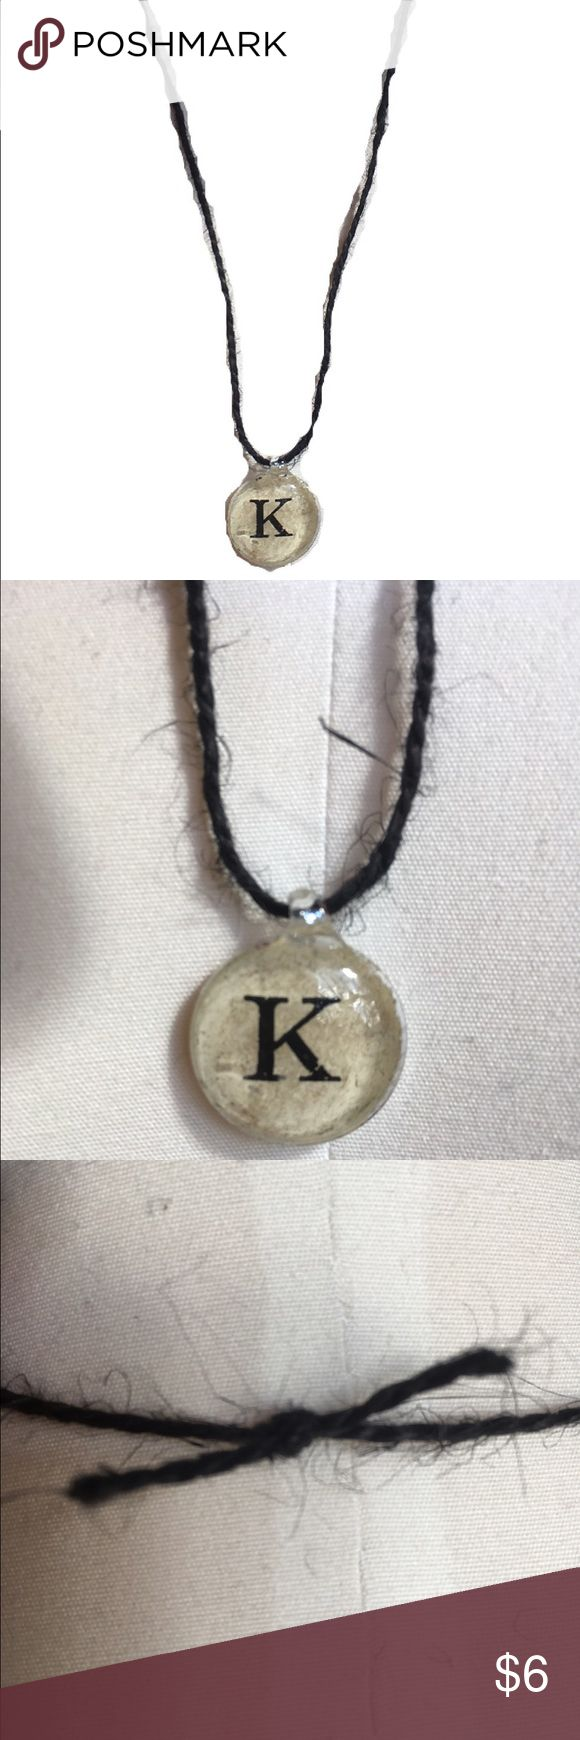 Handmade Black Twine Initial 'K' Necklace Beautiful handmade black twine necklace featuring a silver-coated beige pendant with the initial 'K' in the center. Approx. 13 inches long, including pendant. Only one available. Handmade Jewelry Necklaces